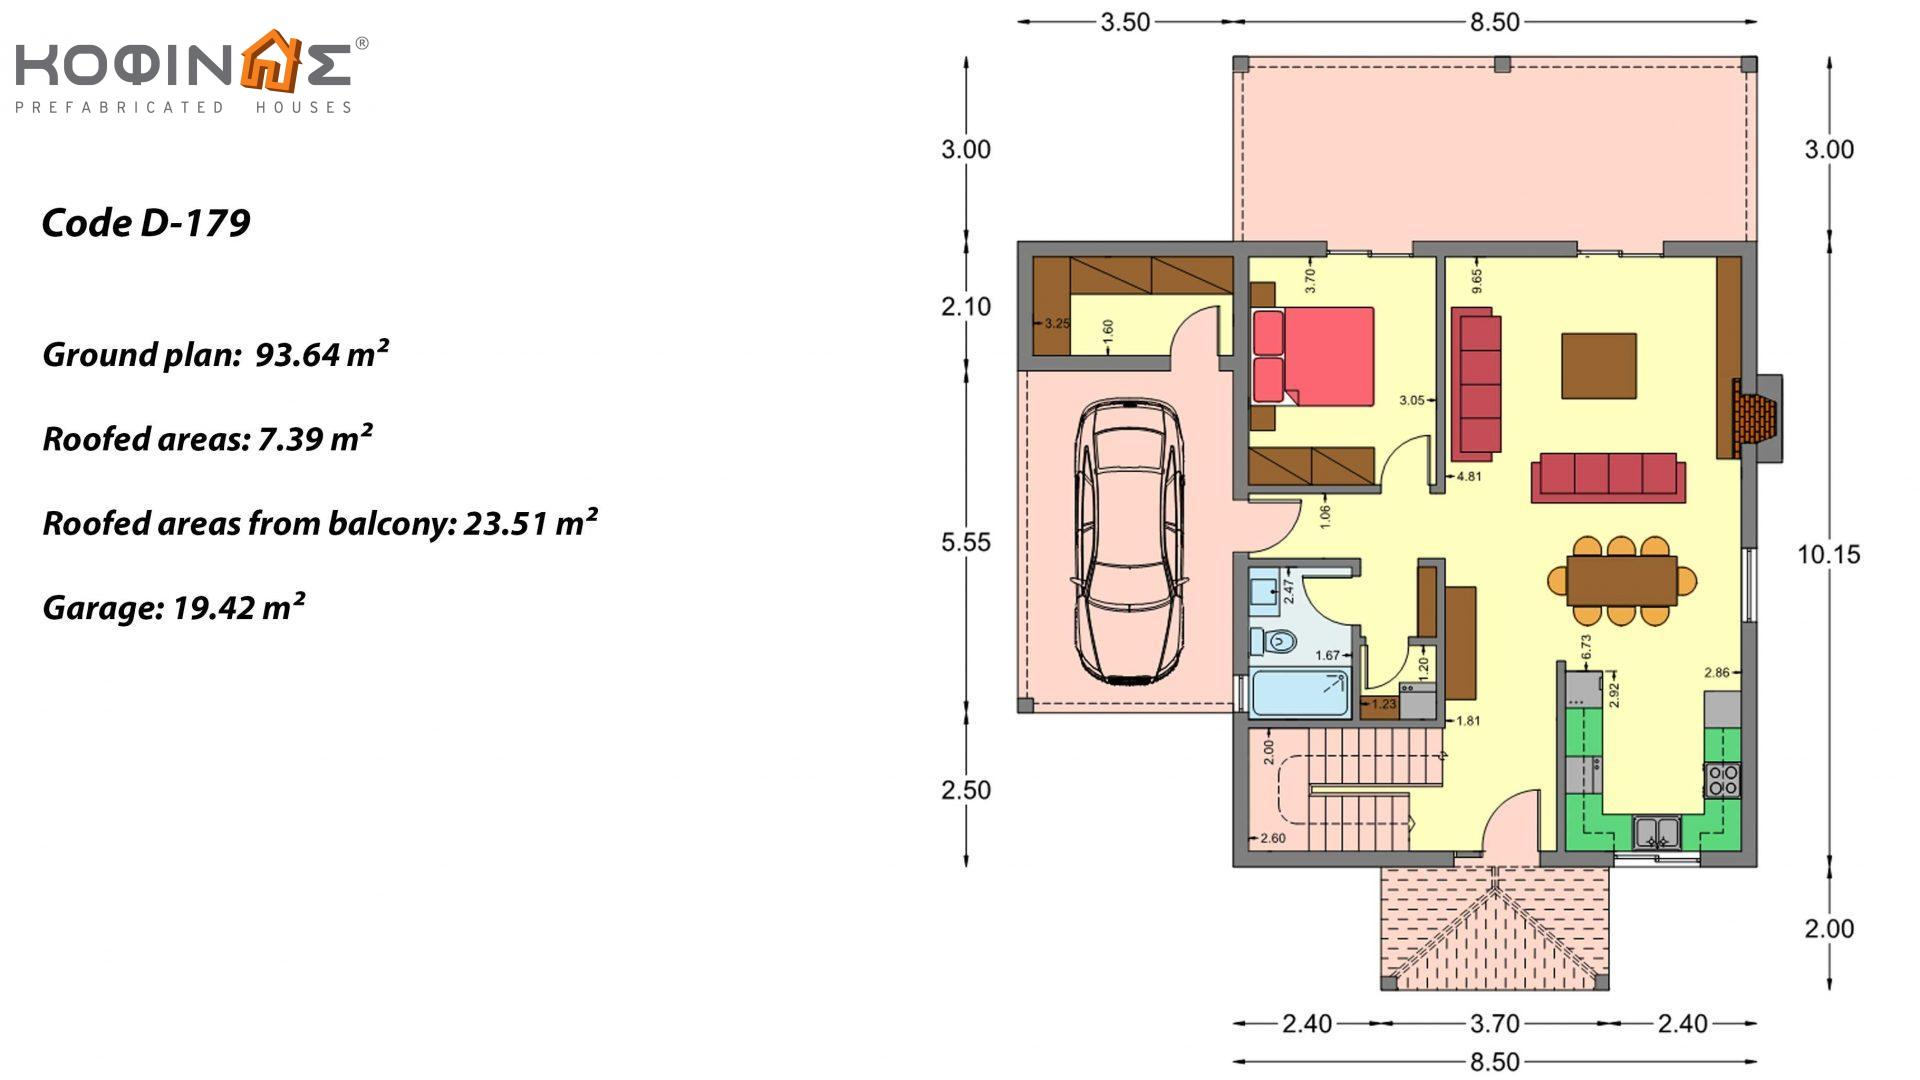 2-story house D-179, total surface of 179.38 m², +Garage 19.42 τ.μ. (=198.80 m²), roofed areas 30.90 m², Balconies 23.51 m²